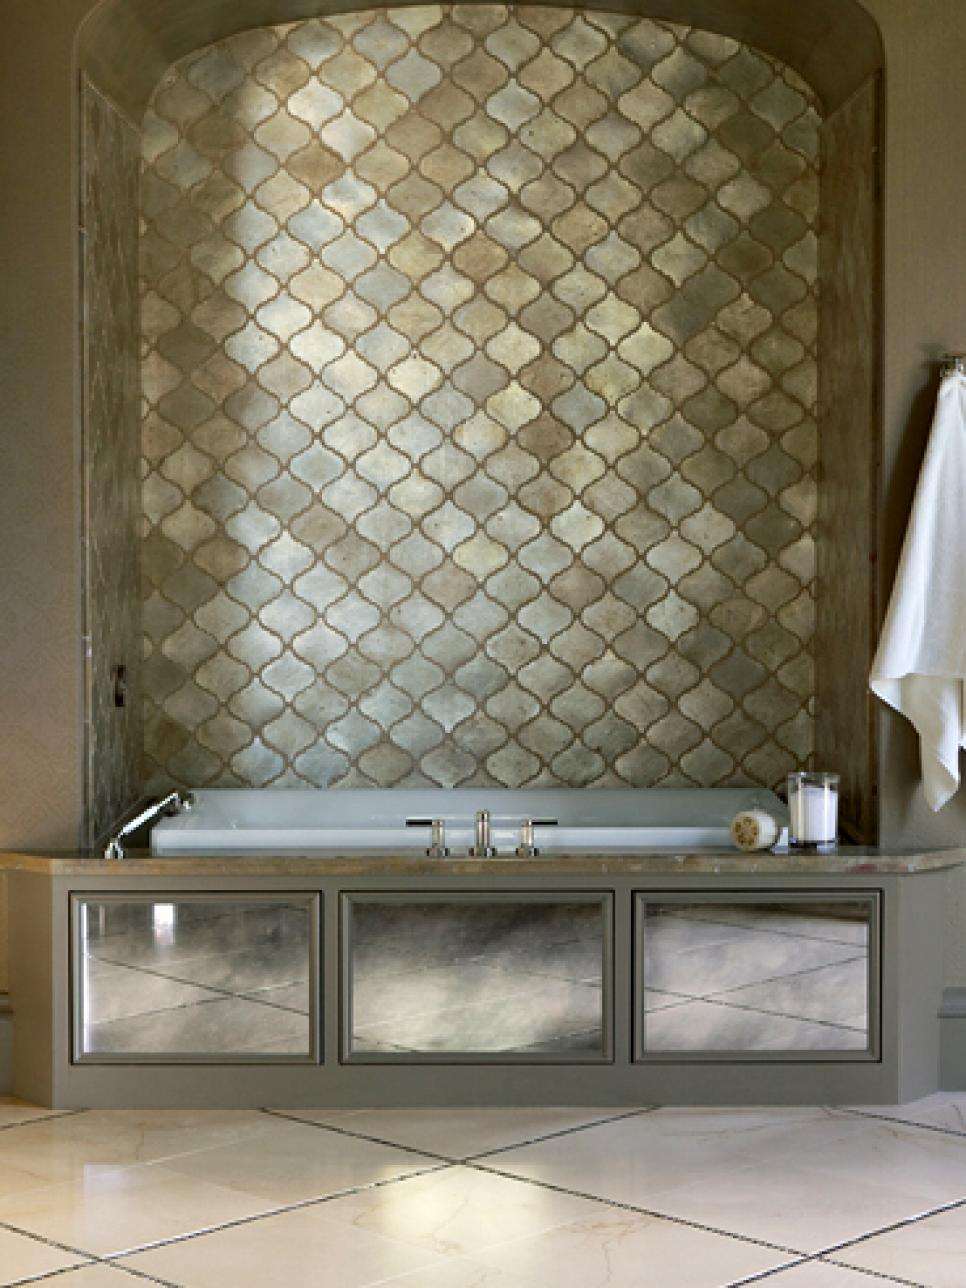 10 best bathroom remodeling trends bath crashers diy - Bathroom Tiles Trends 2013